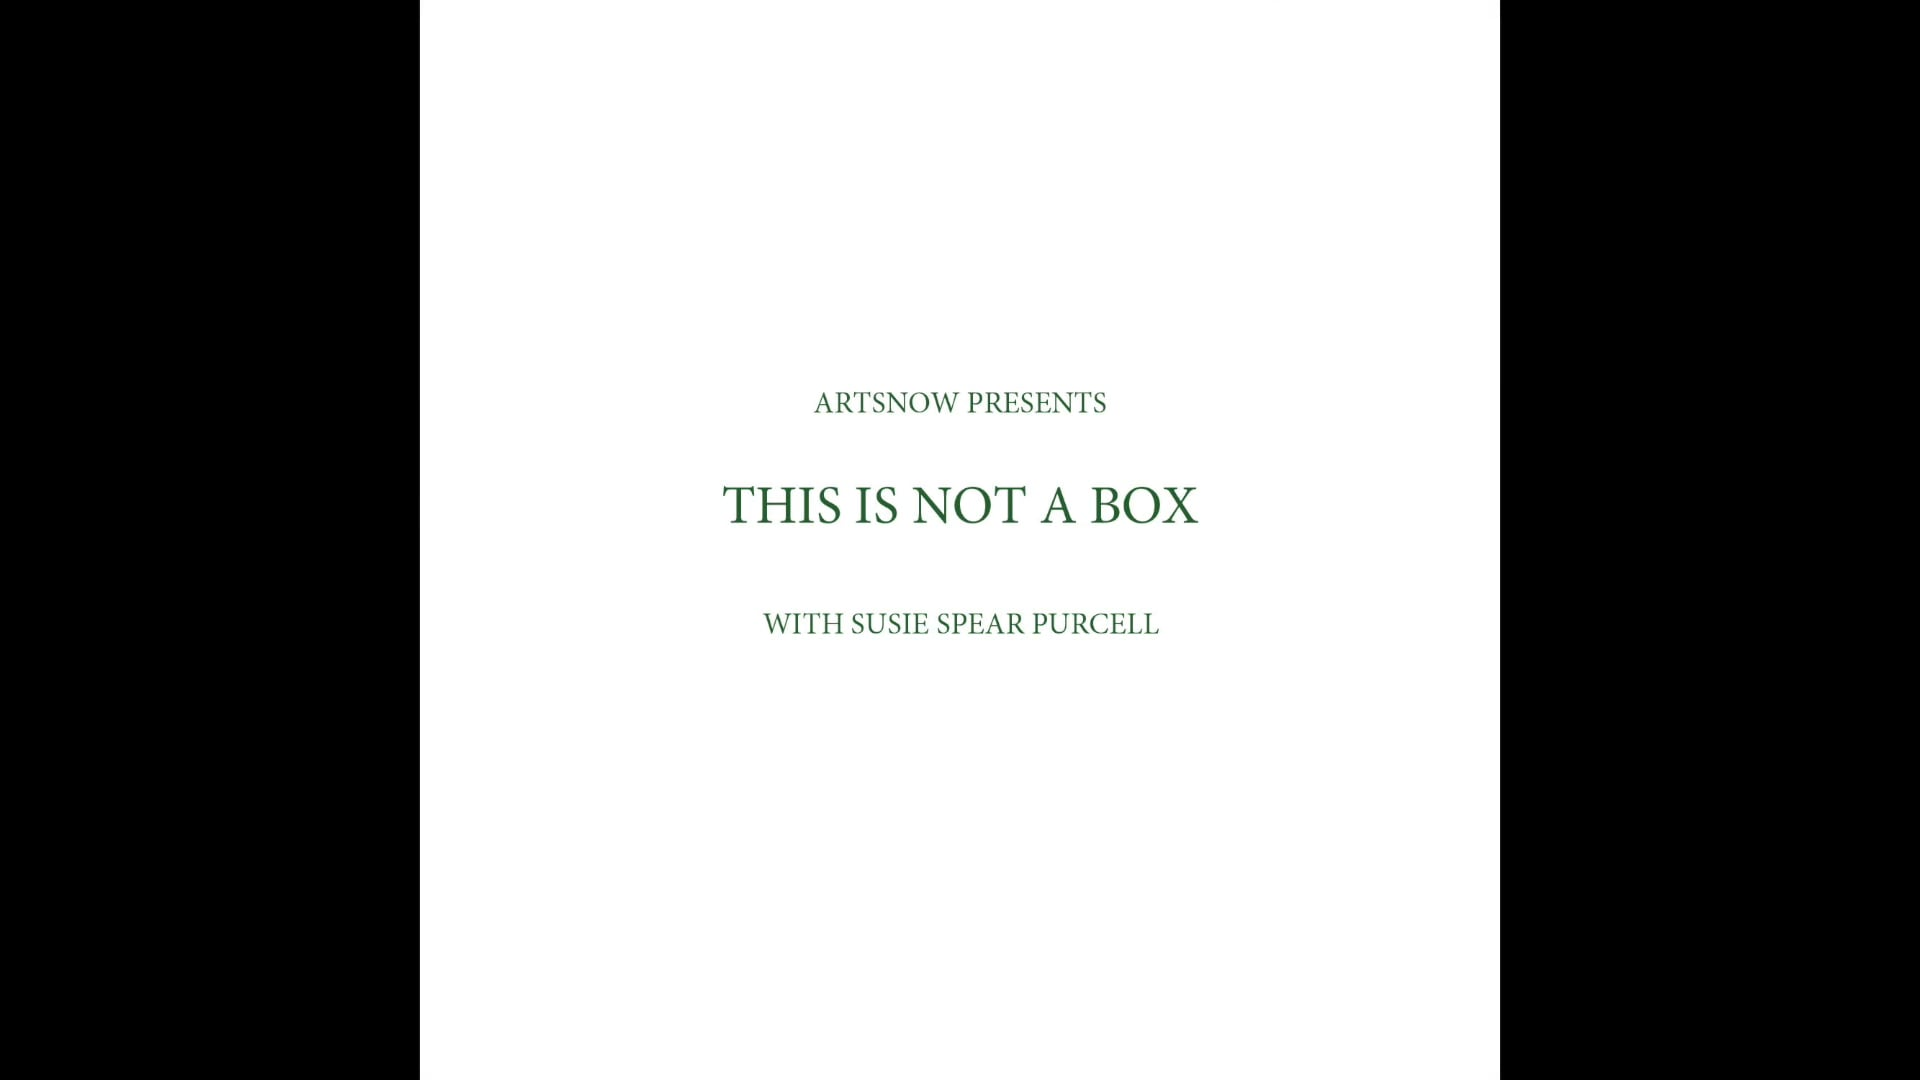 New Digital Ideas: This Is Not A Box